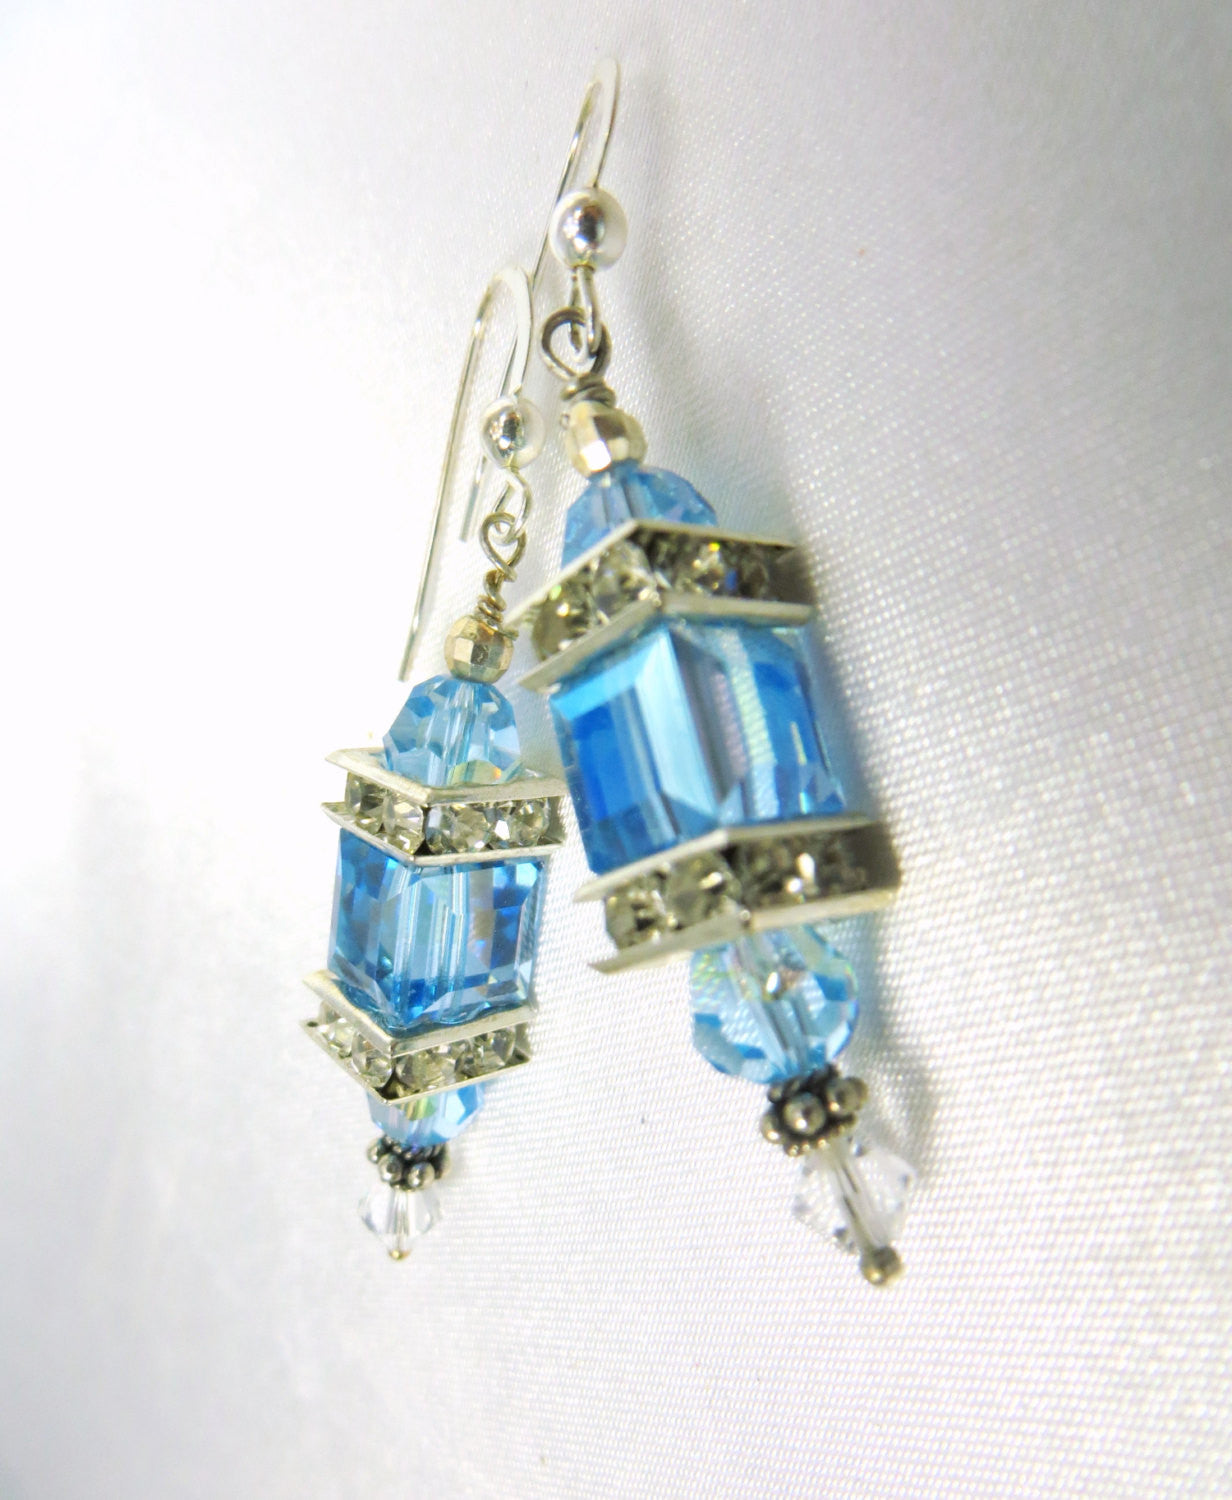 Sky Blue Aquamarine AB aurora borealis Swarovski Cube Lantern Earrings on Sterling Silver - Odyssey Creations